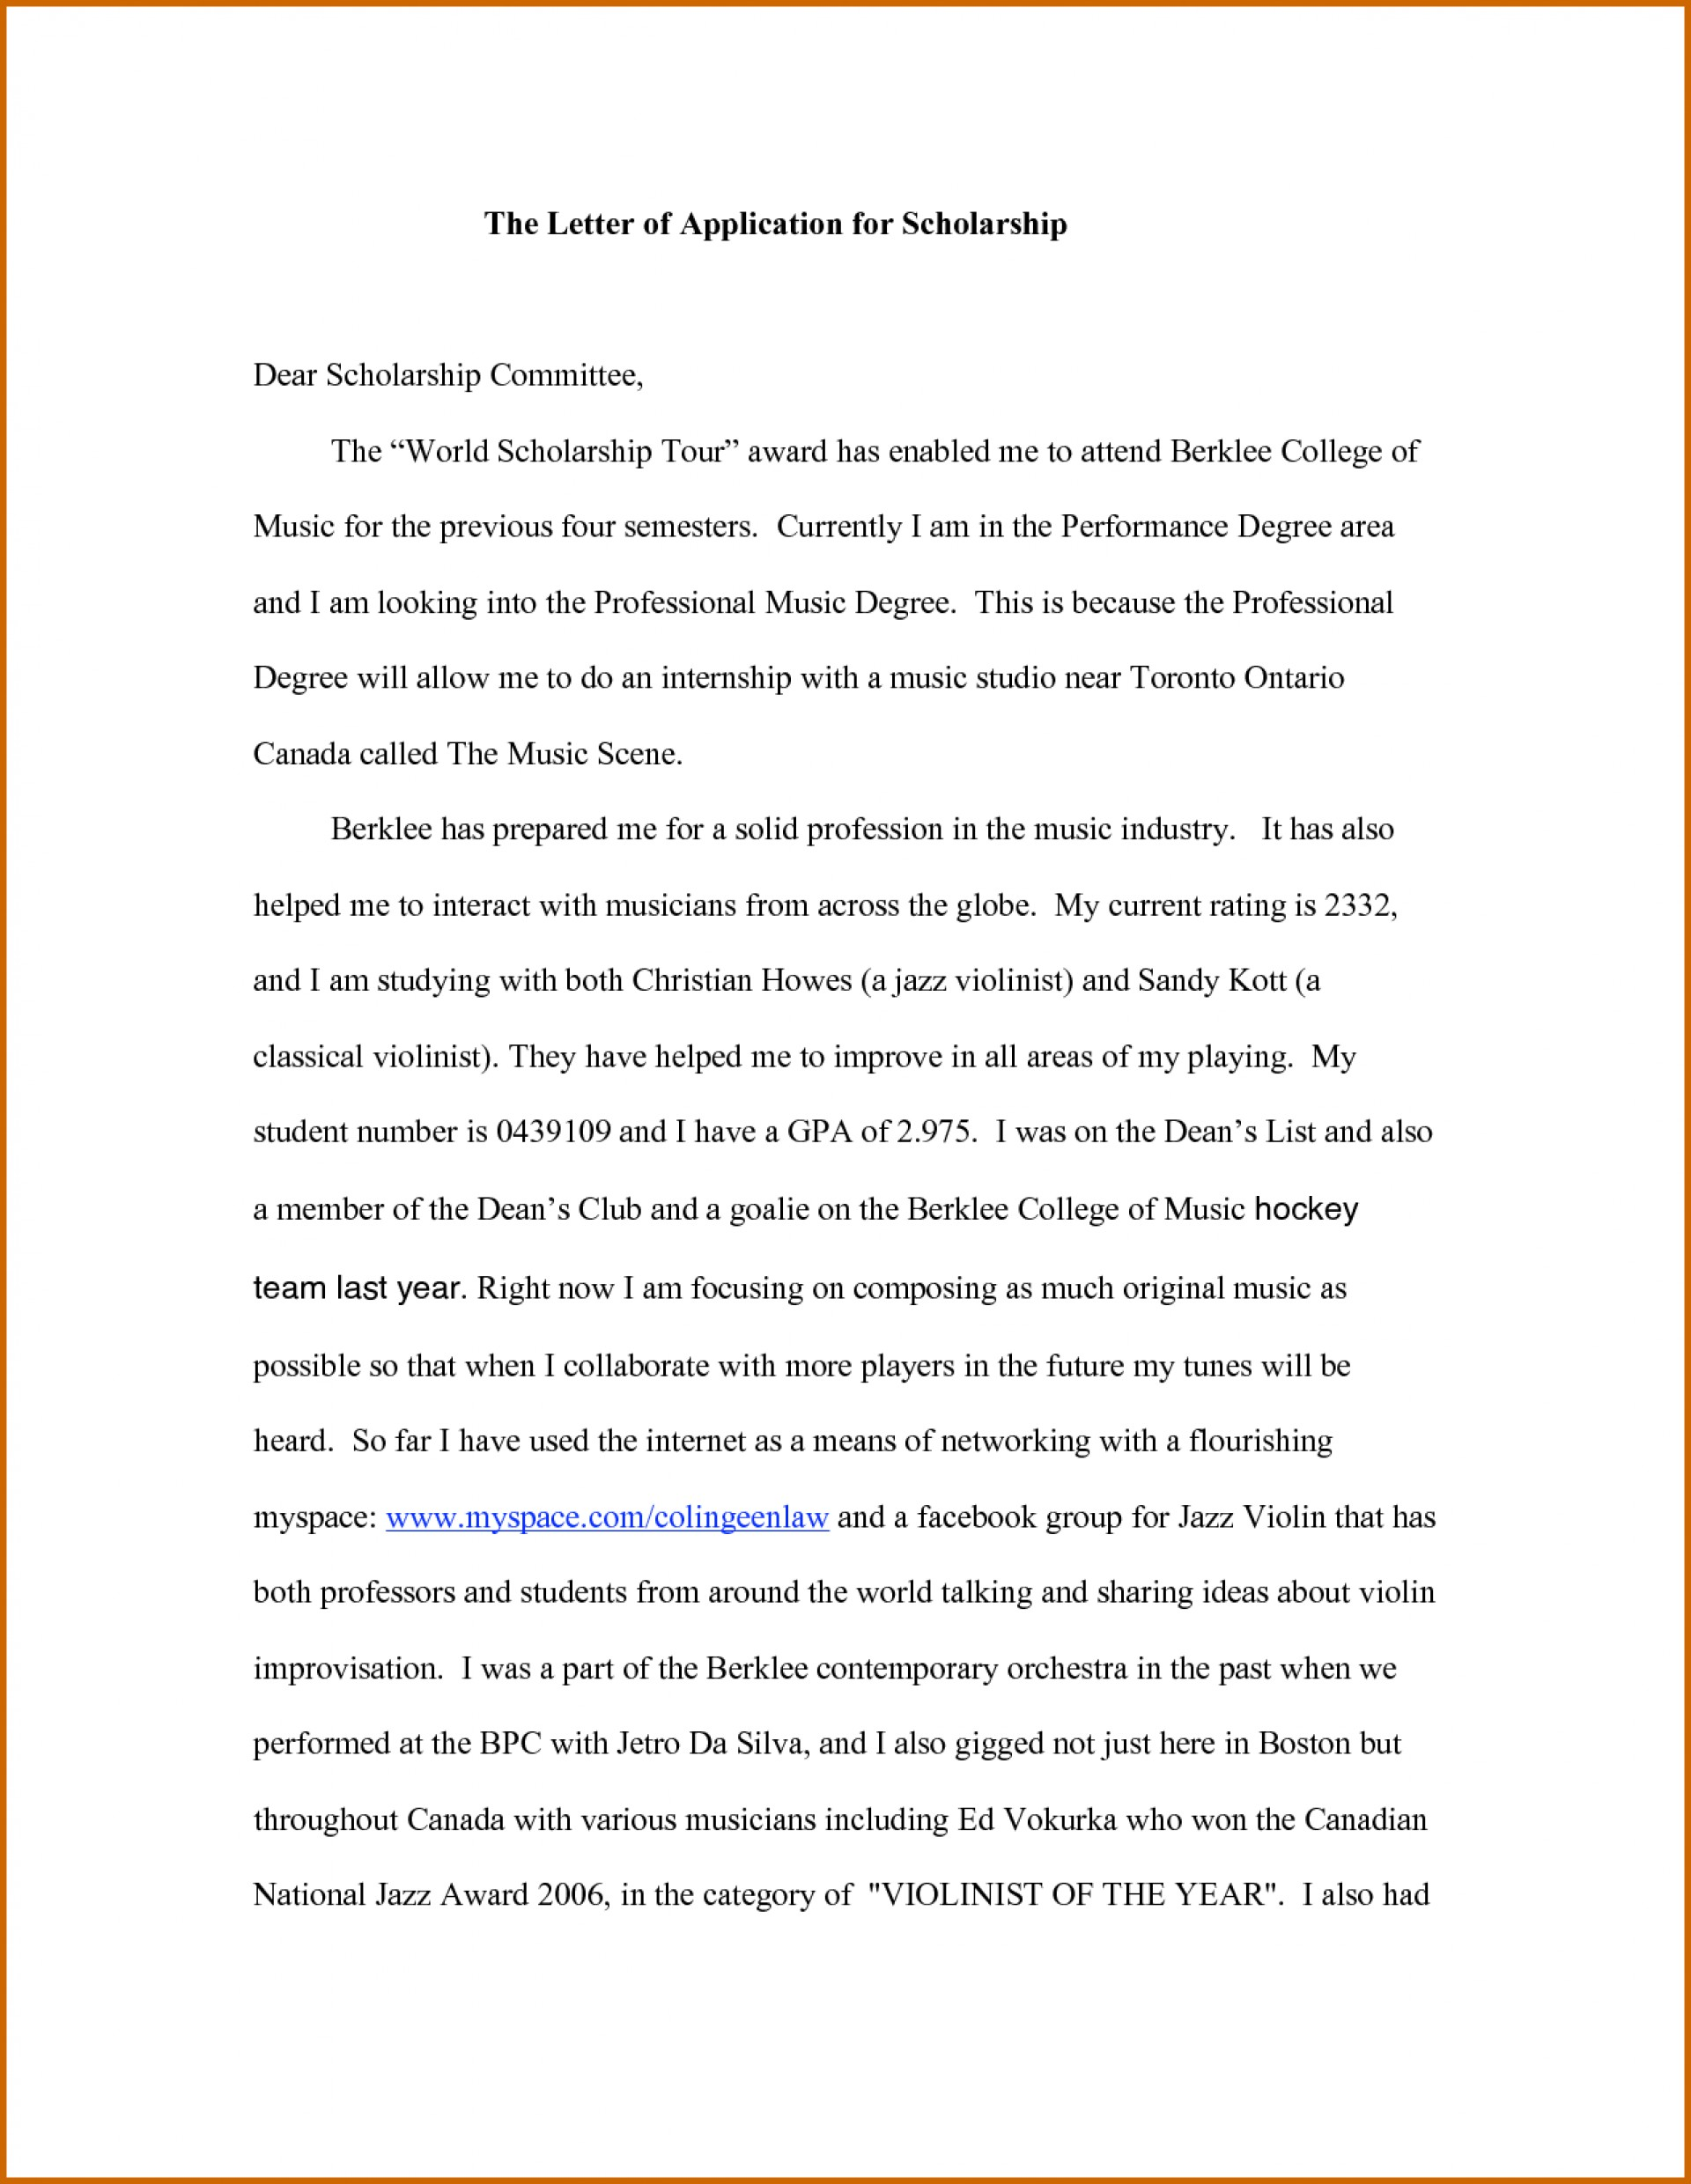 007 Essay Example How To Write Application For Scholarship Frightening Sample Nursing Engineering Pdf 1920